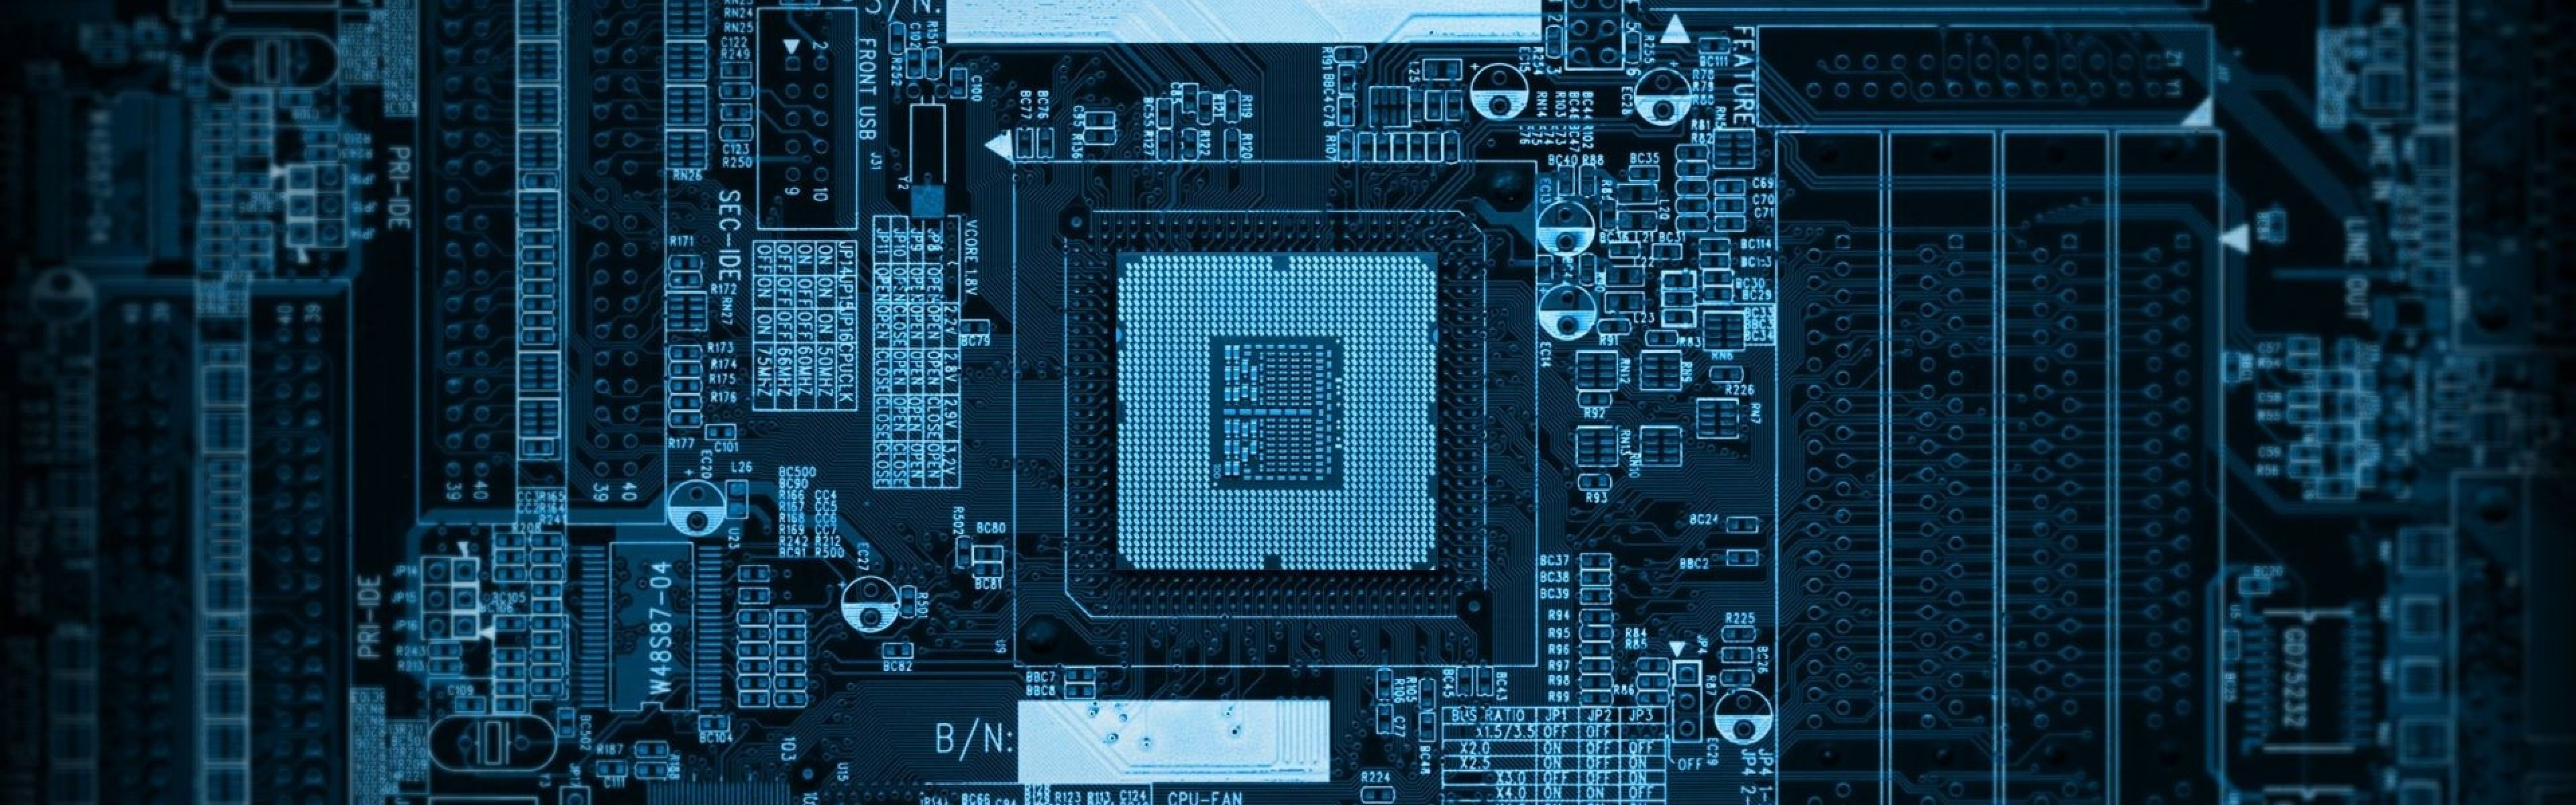 Chip Computer Microchip Processor Wallpaper Background Dual Wide 3840x1200